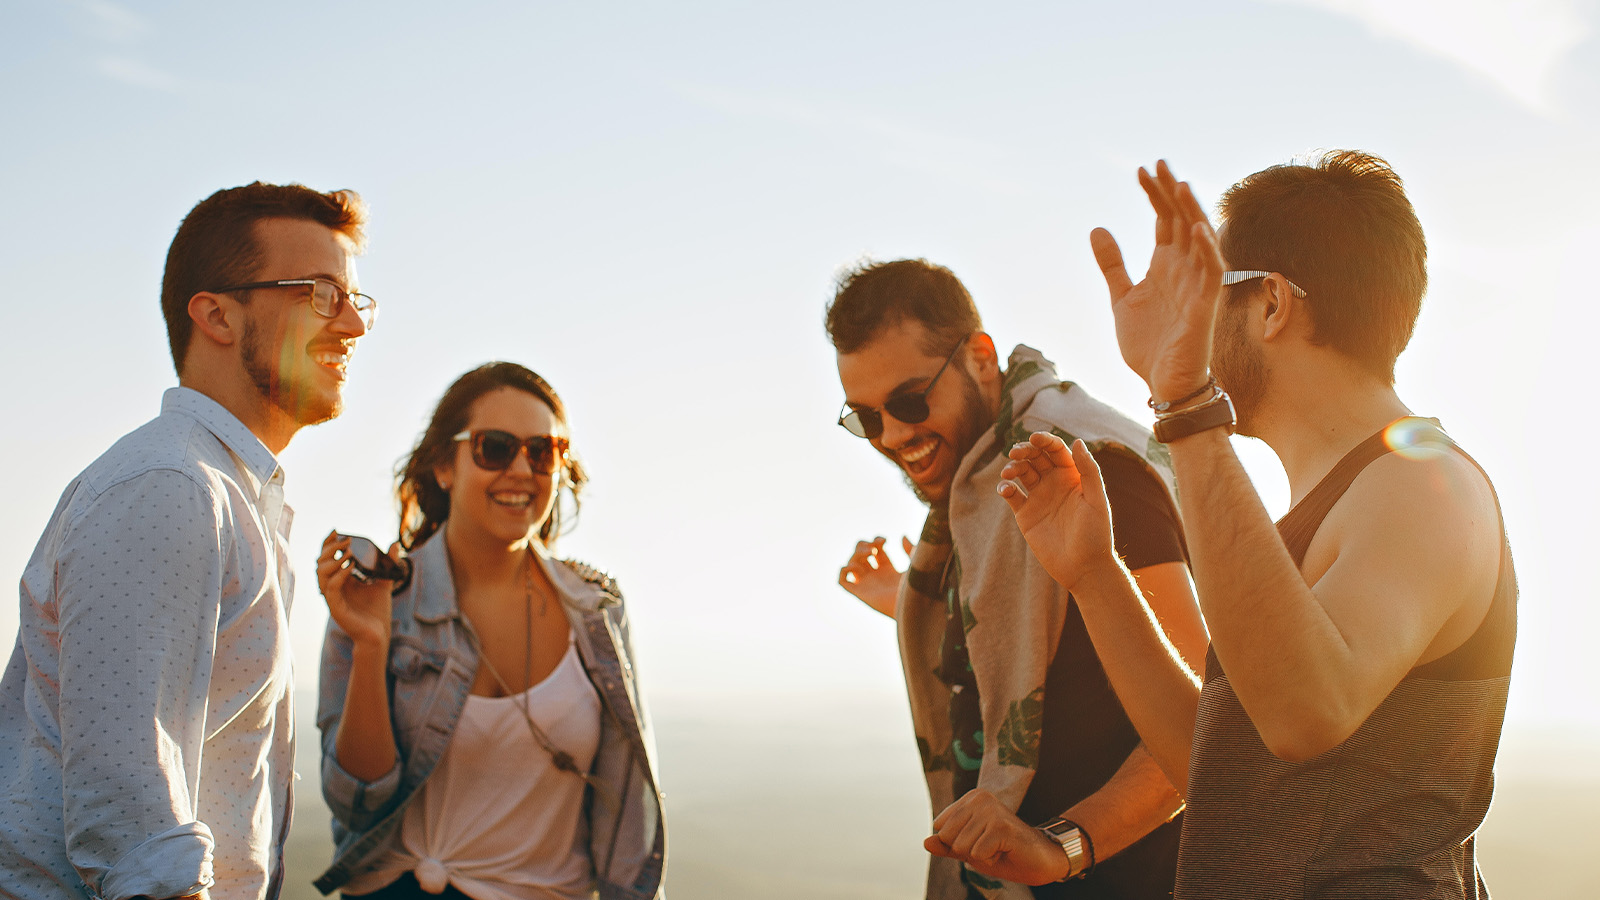 You Are Not The Sum of Your 5 Friends - Joey The Psypreneur